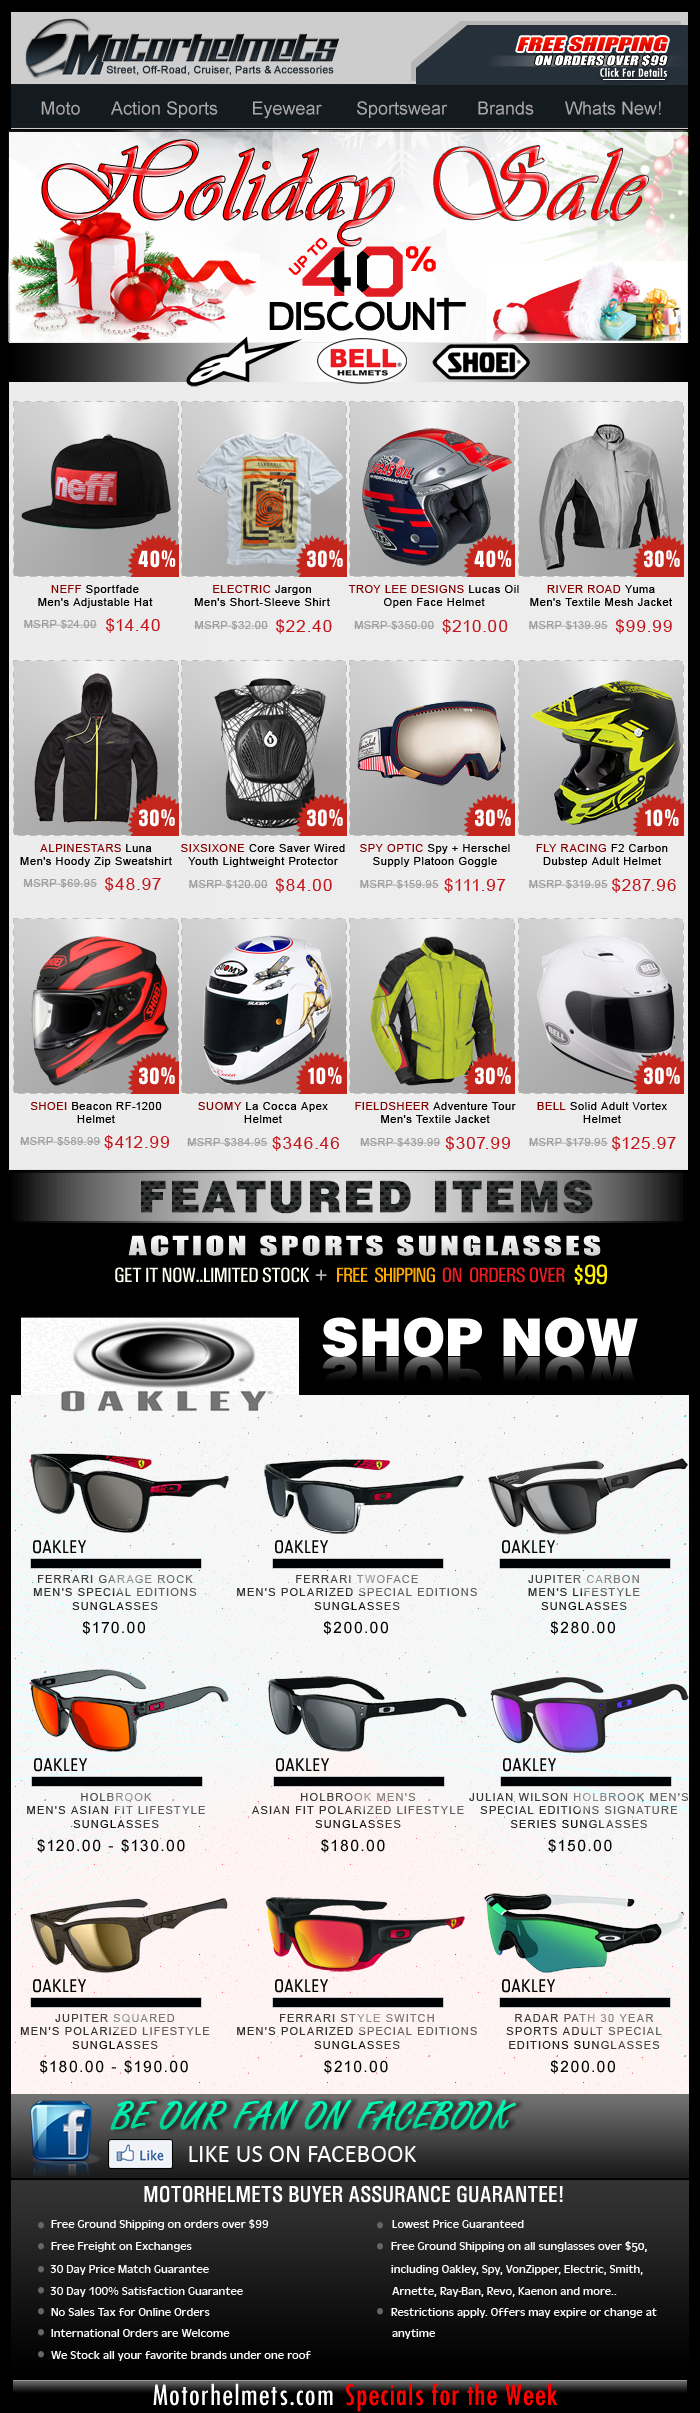 Holiday SALE continues...Up to 40% off on Astars, Bell, Shoei and more!